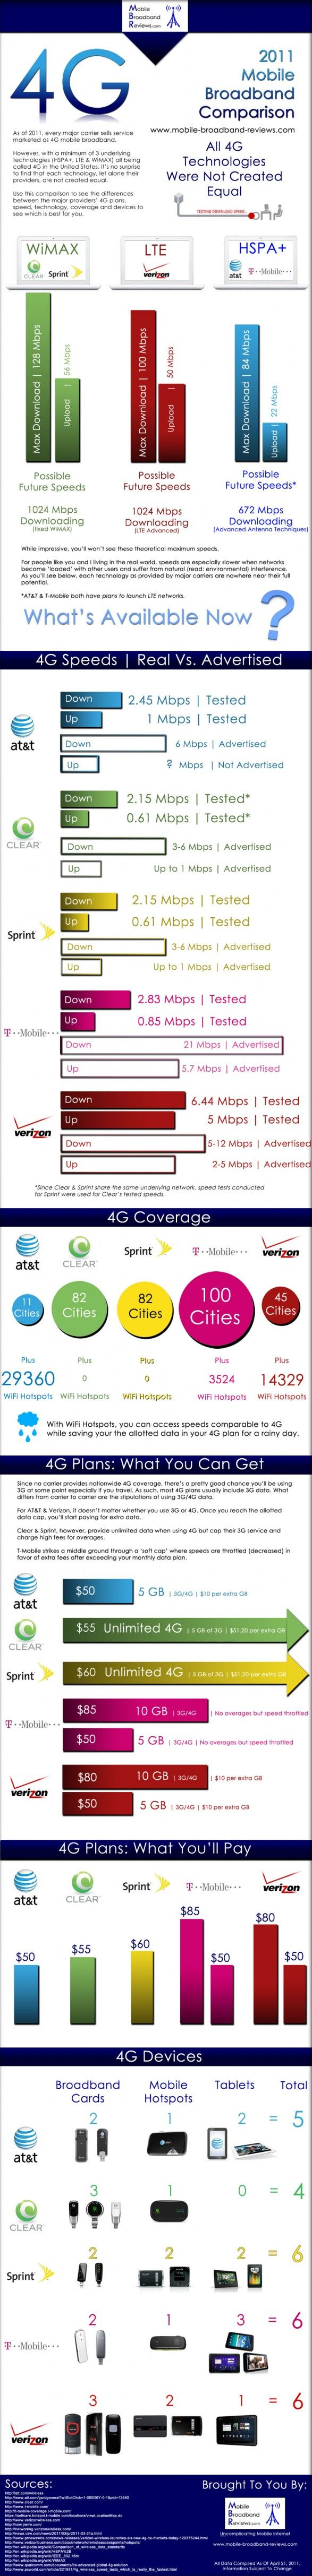 Understanding the 4G Devices: Infographic: Broadband Review, Comparison Infographic,  Internet Site, 2011 Mobiles, Mobiles Broadband,  Website, Mobiles 4G, 4G Comparison 2011 Review, Infographic Style